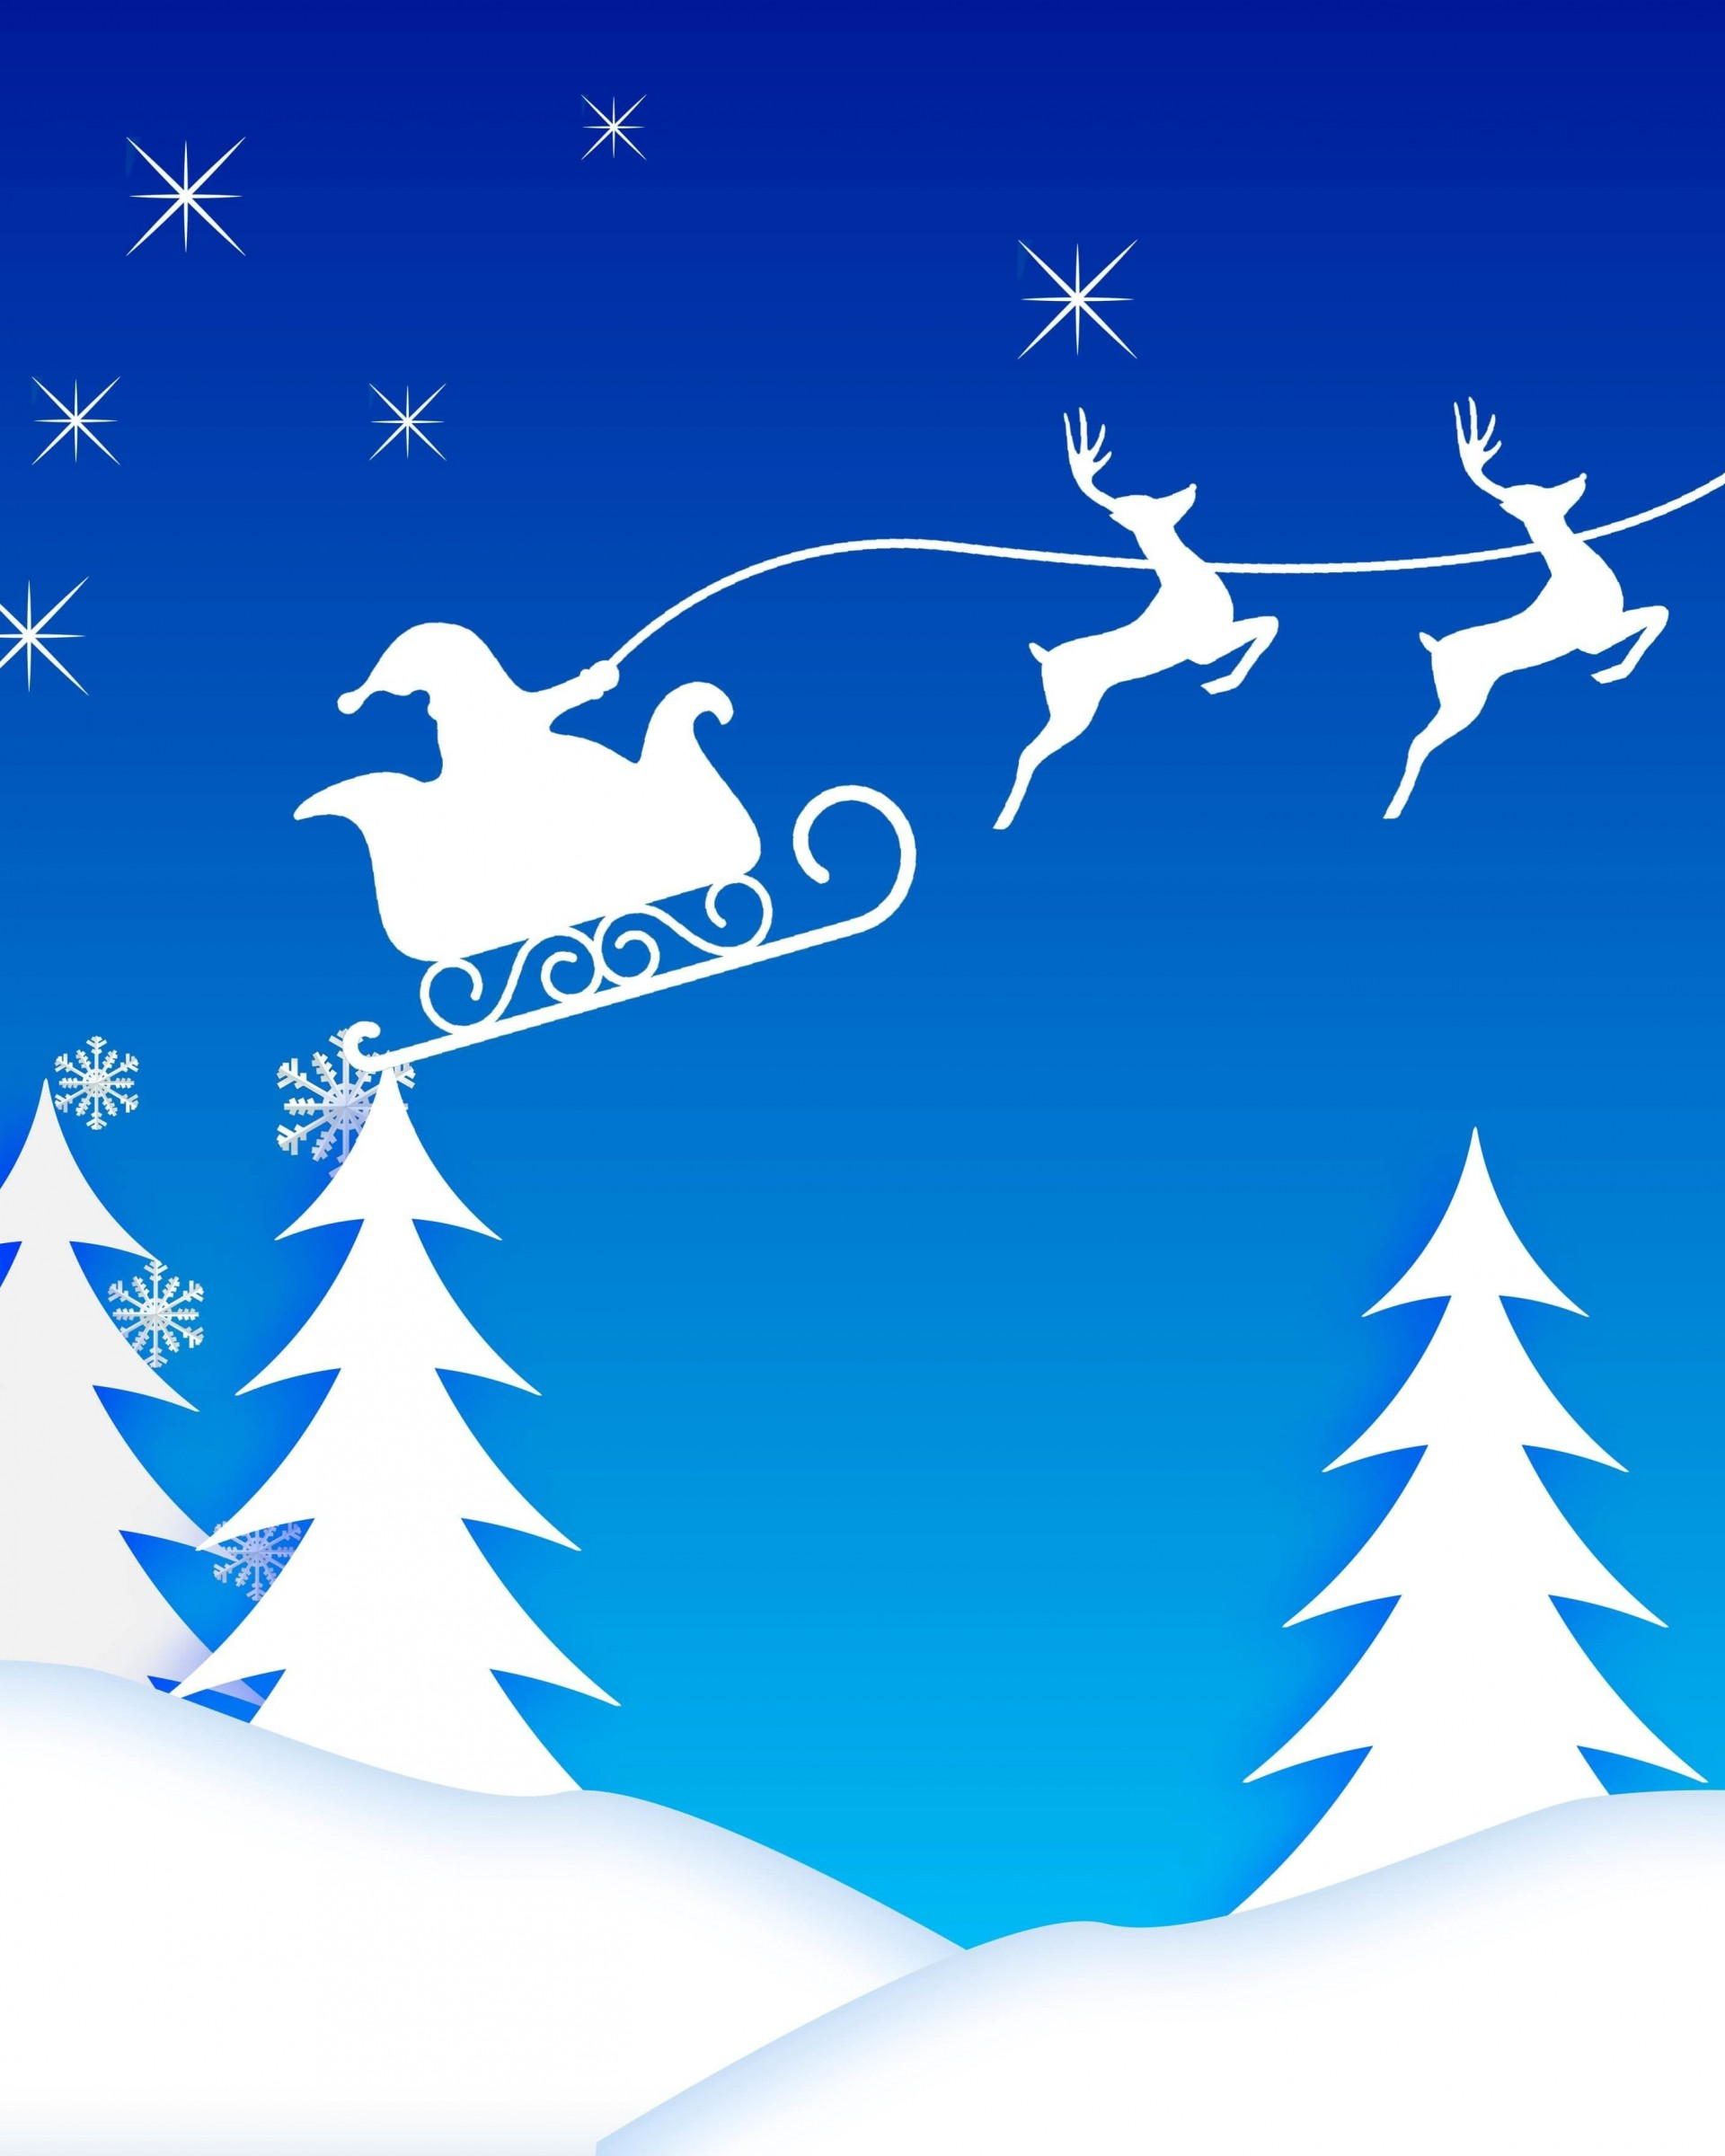 Santa's Sleigh Illustration Wallpaper for Google Nexus 7